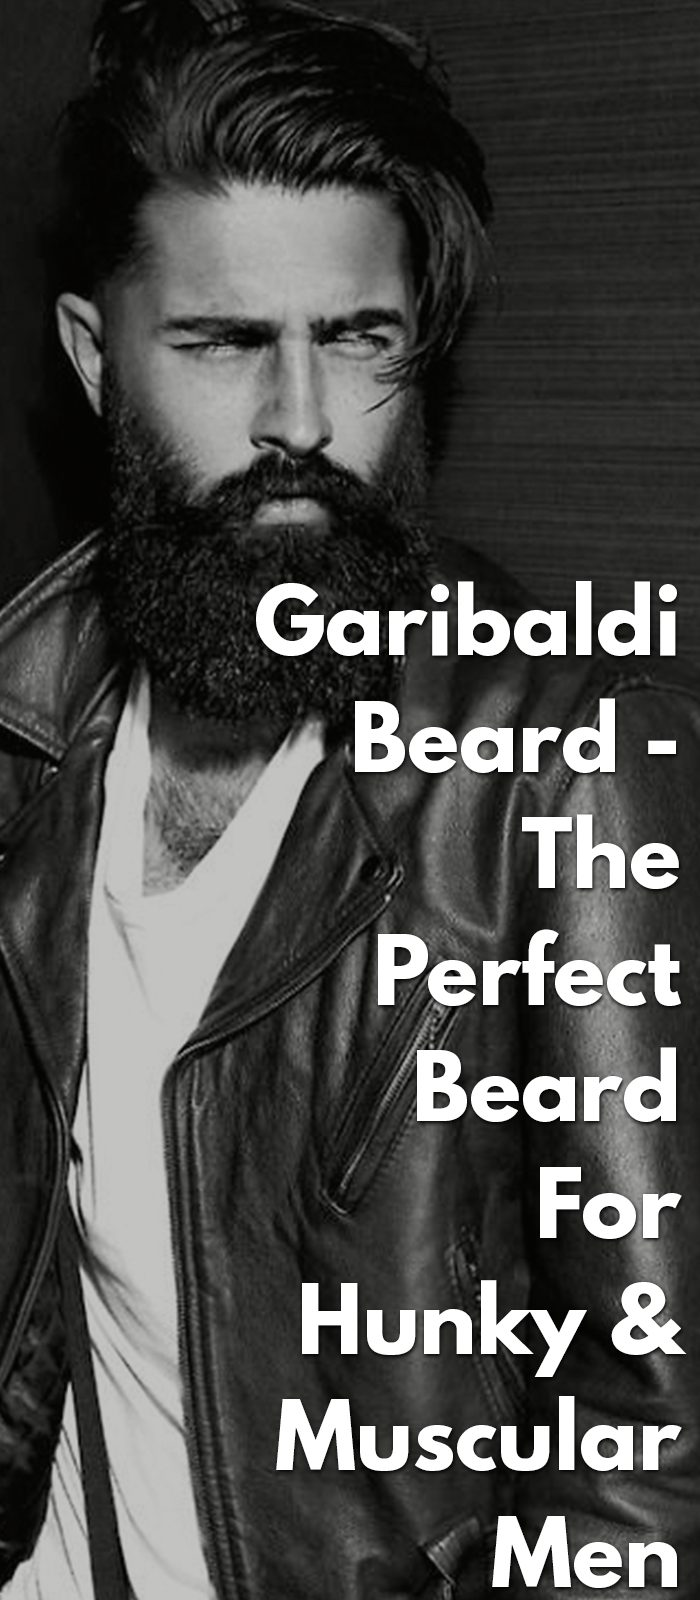 Garibaldi-Beard--The-Perfect-Beard-For-Hunky-&-Muscular-Men..